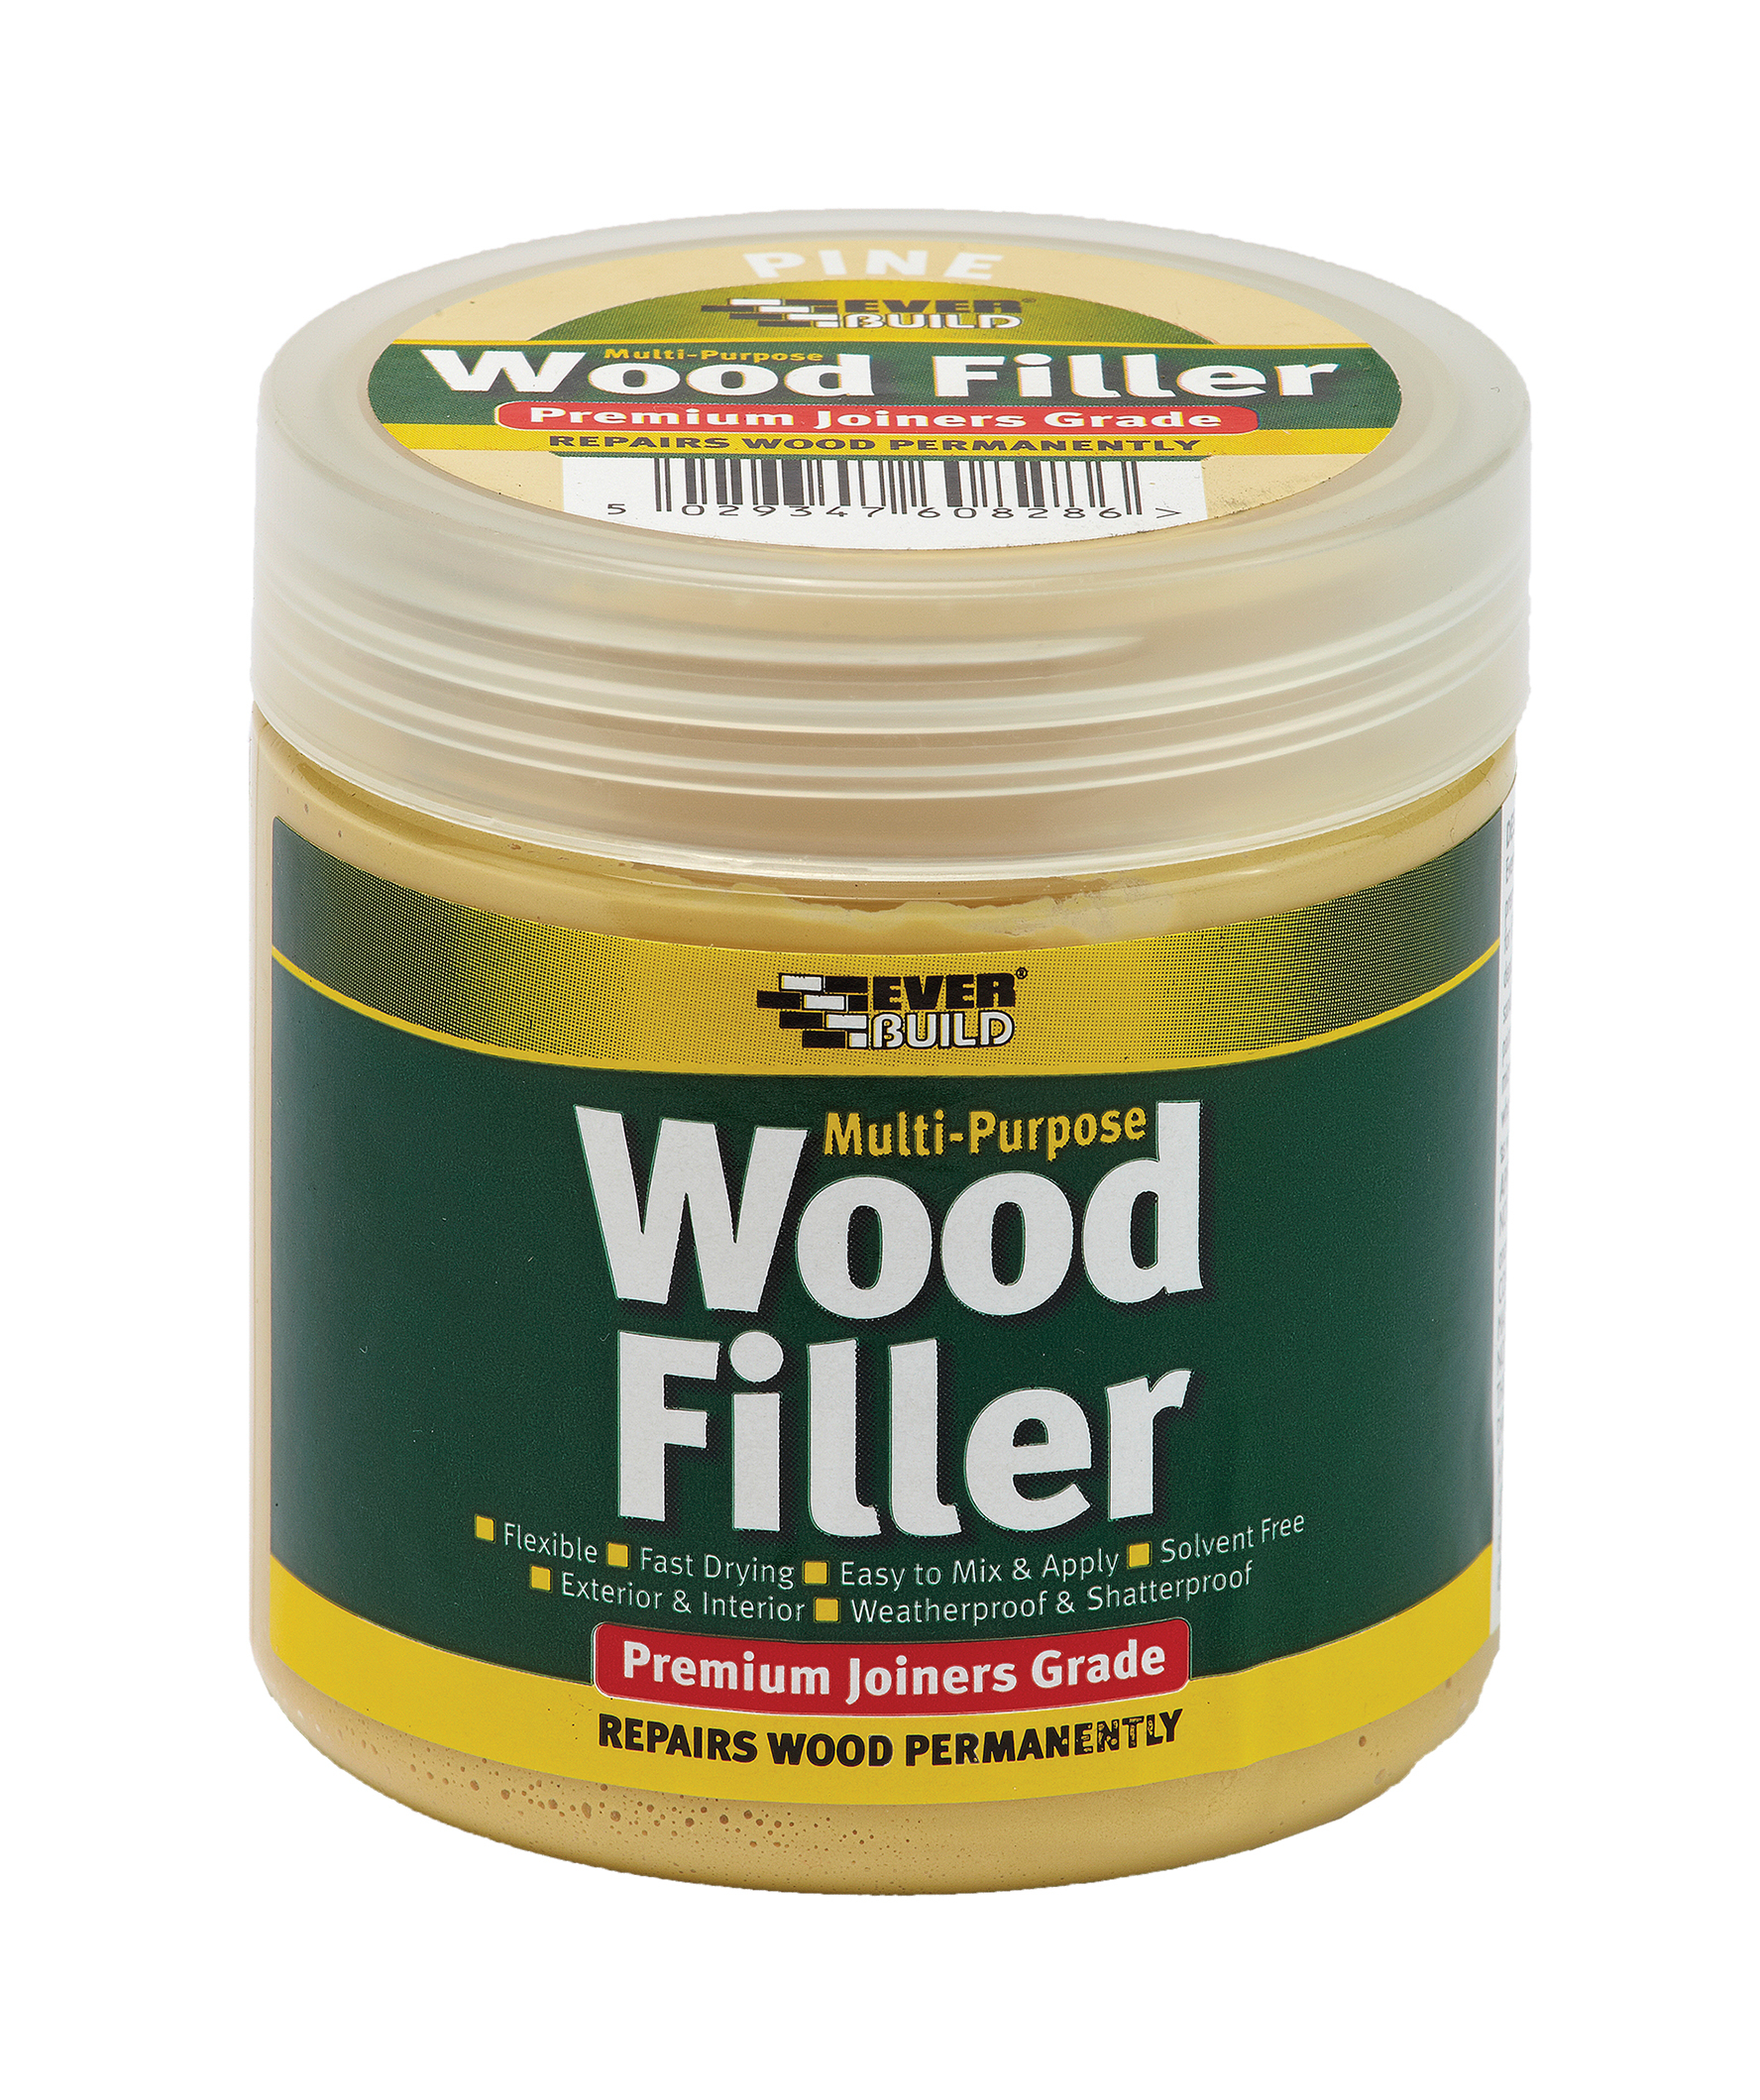 Everbuild Multi-Purpose 1-Part Wood Filler Pine